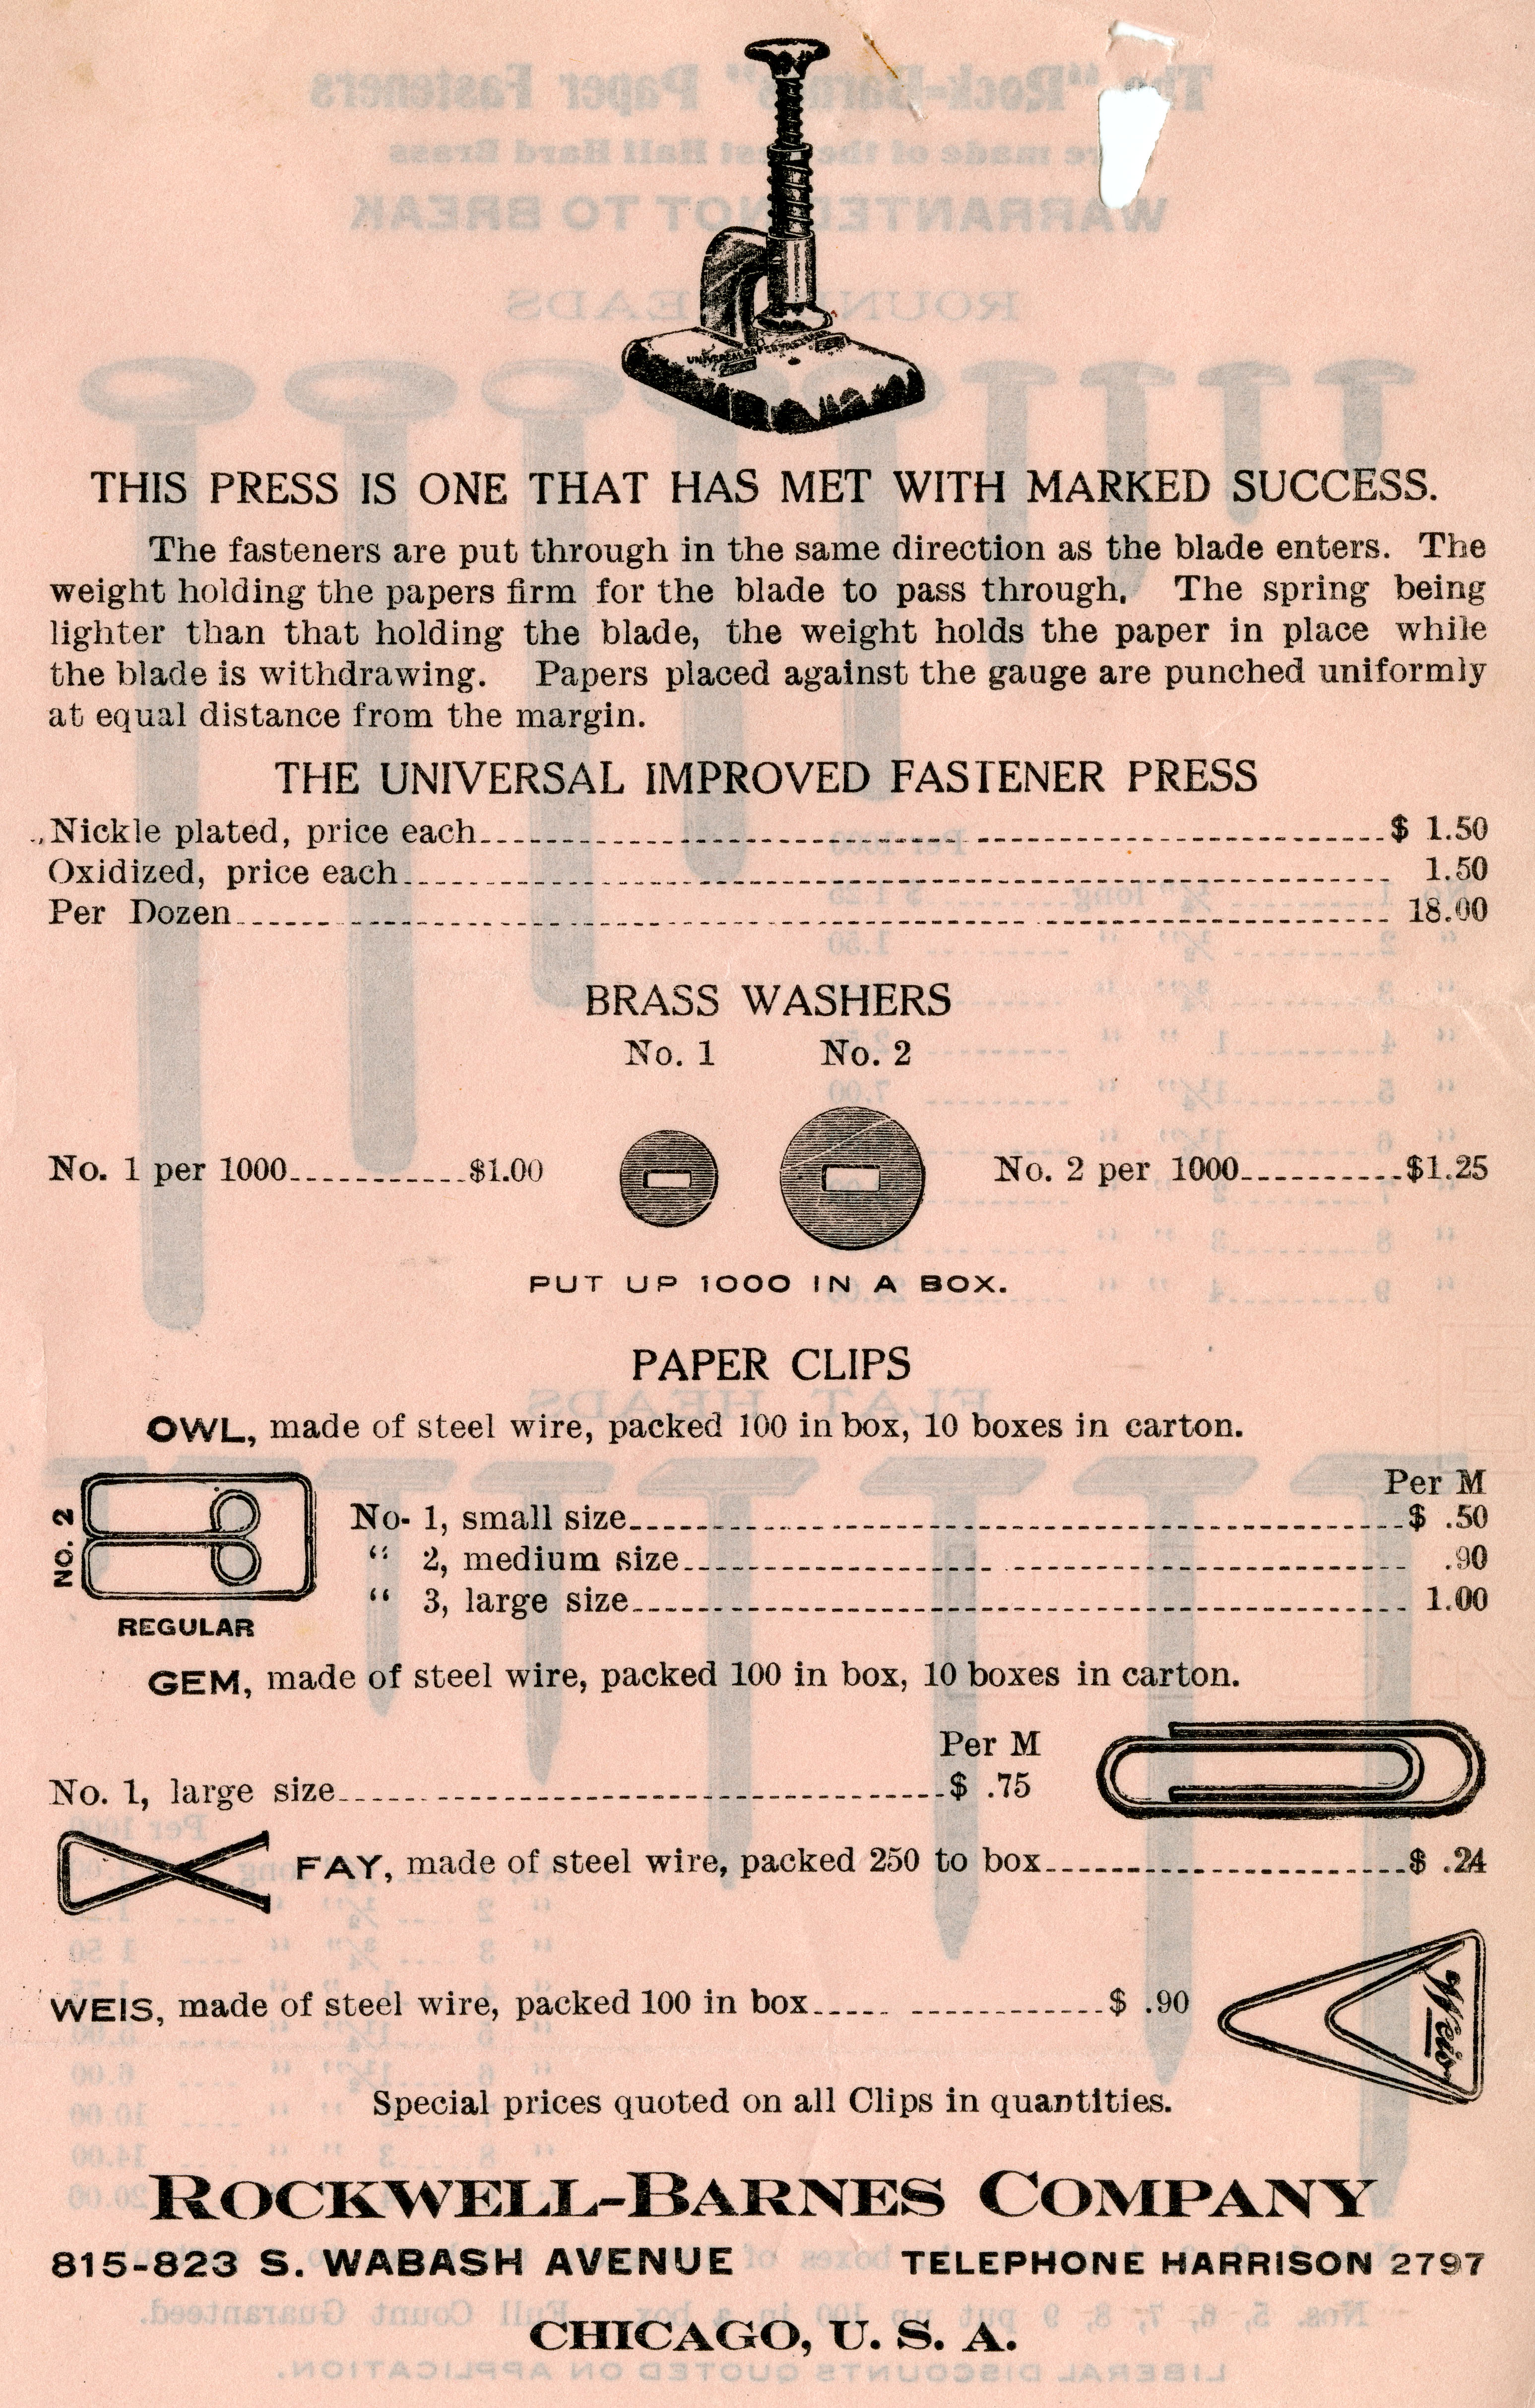 Advertisement and price list for Rockwell-Barnes Company, manufacturer of fasteners, undated.